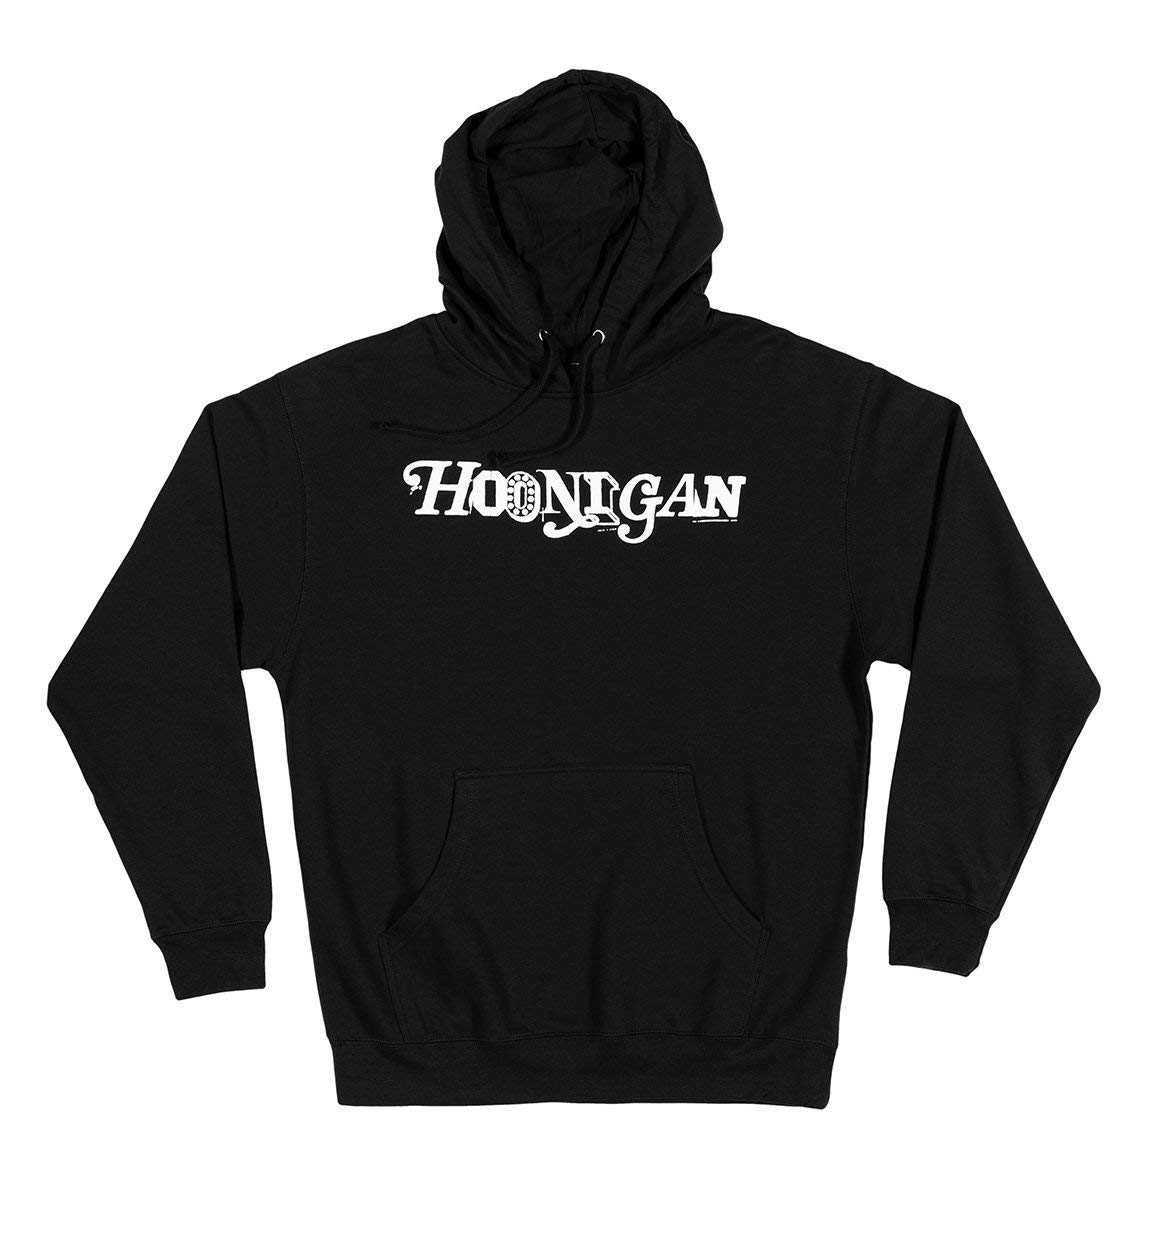 Gear-Heads Hoonigan Aint Care Pullover Race-Car Sports Fans Gift for Him. Drifting Car Truck Motorcycle Enthusiasts Best Cool Graphic Tee for Mechanics